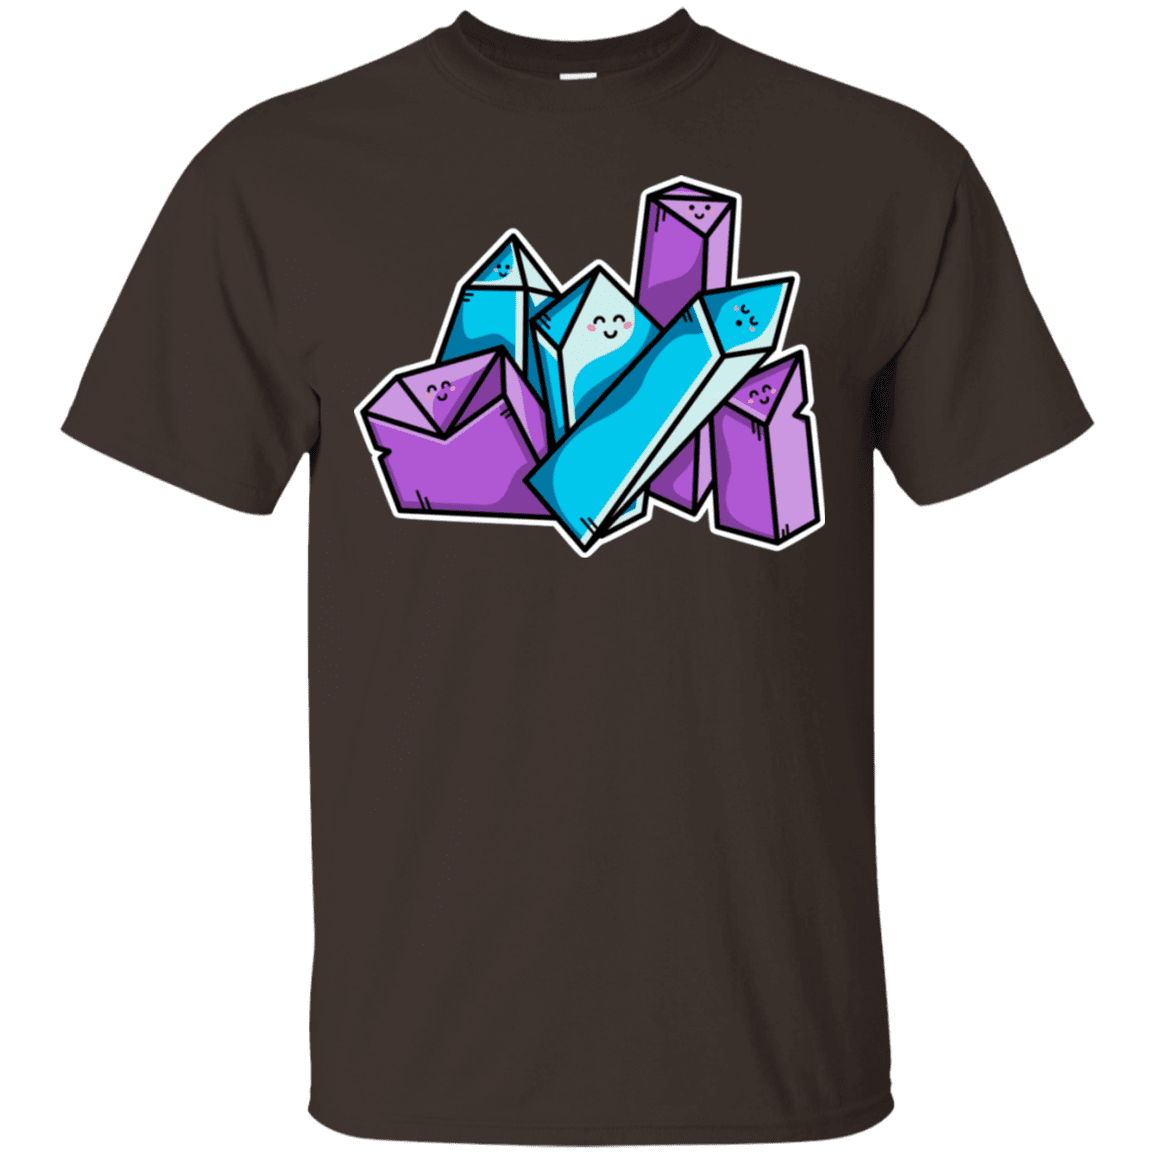 T-Shirts Dark Chocolate / S Kawaii Cute Crystals T-Shirt